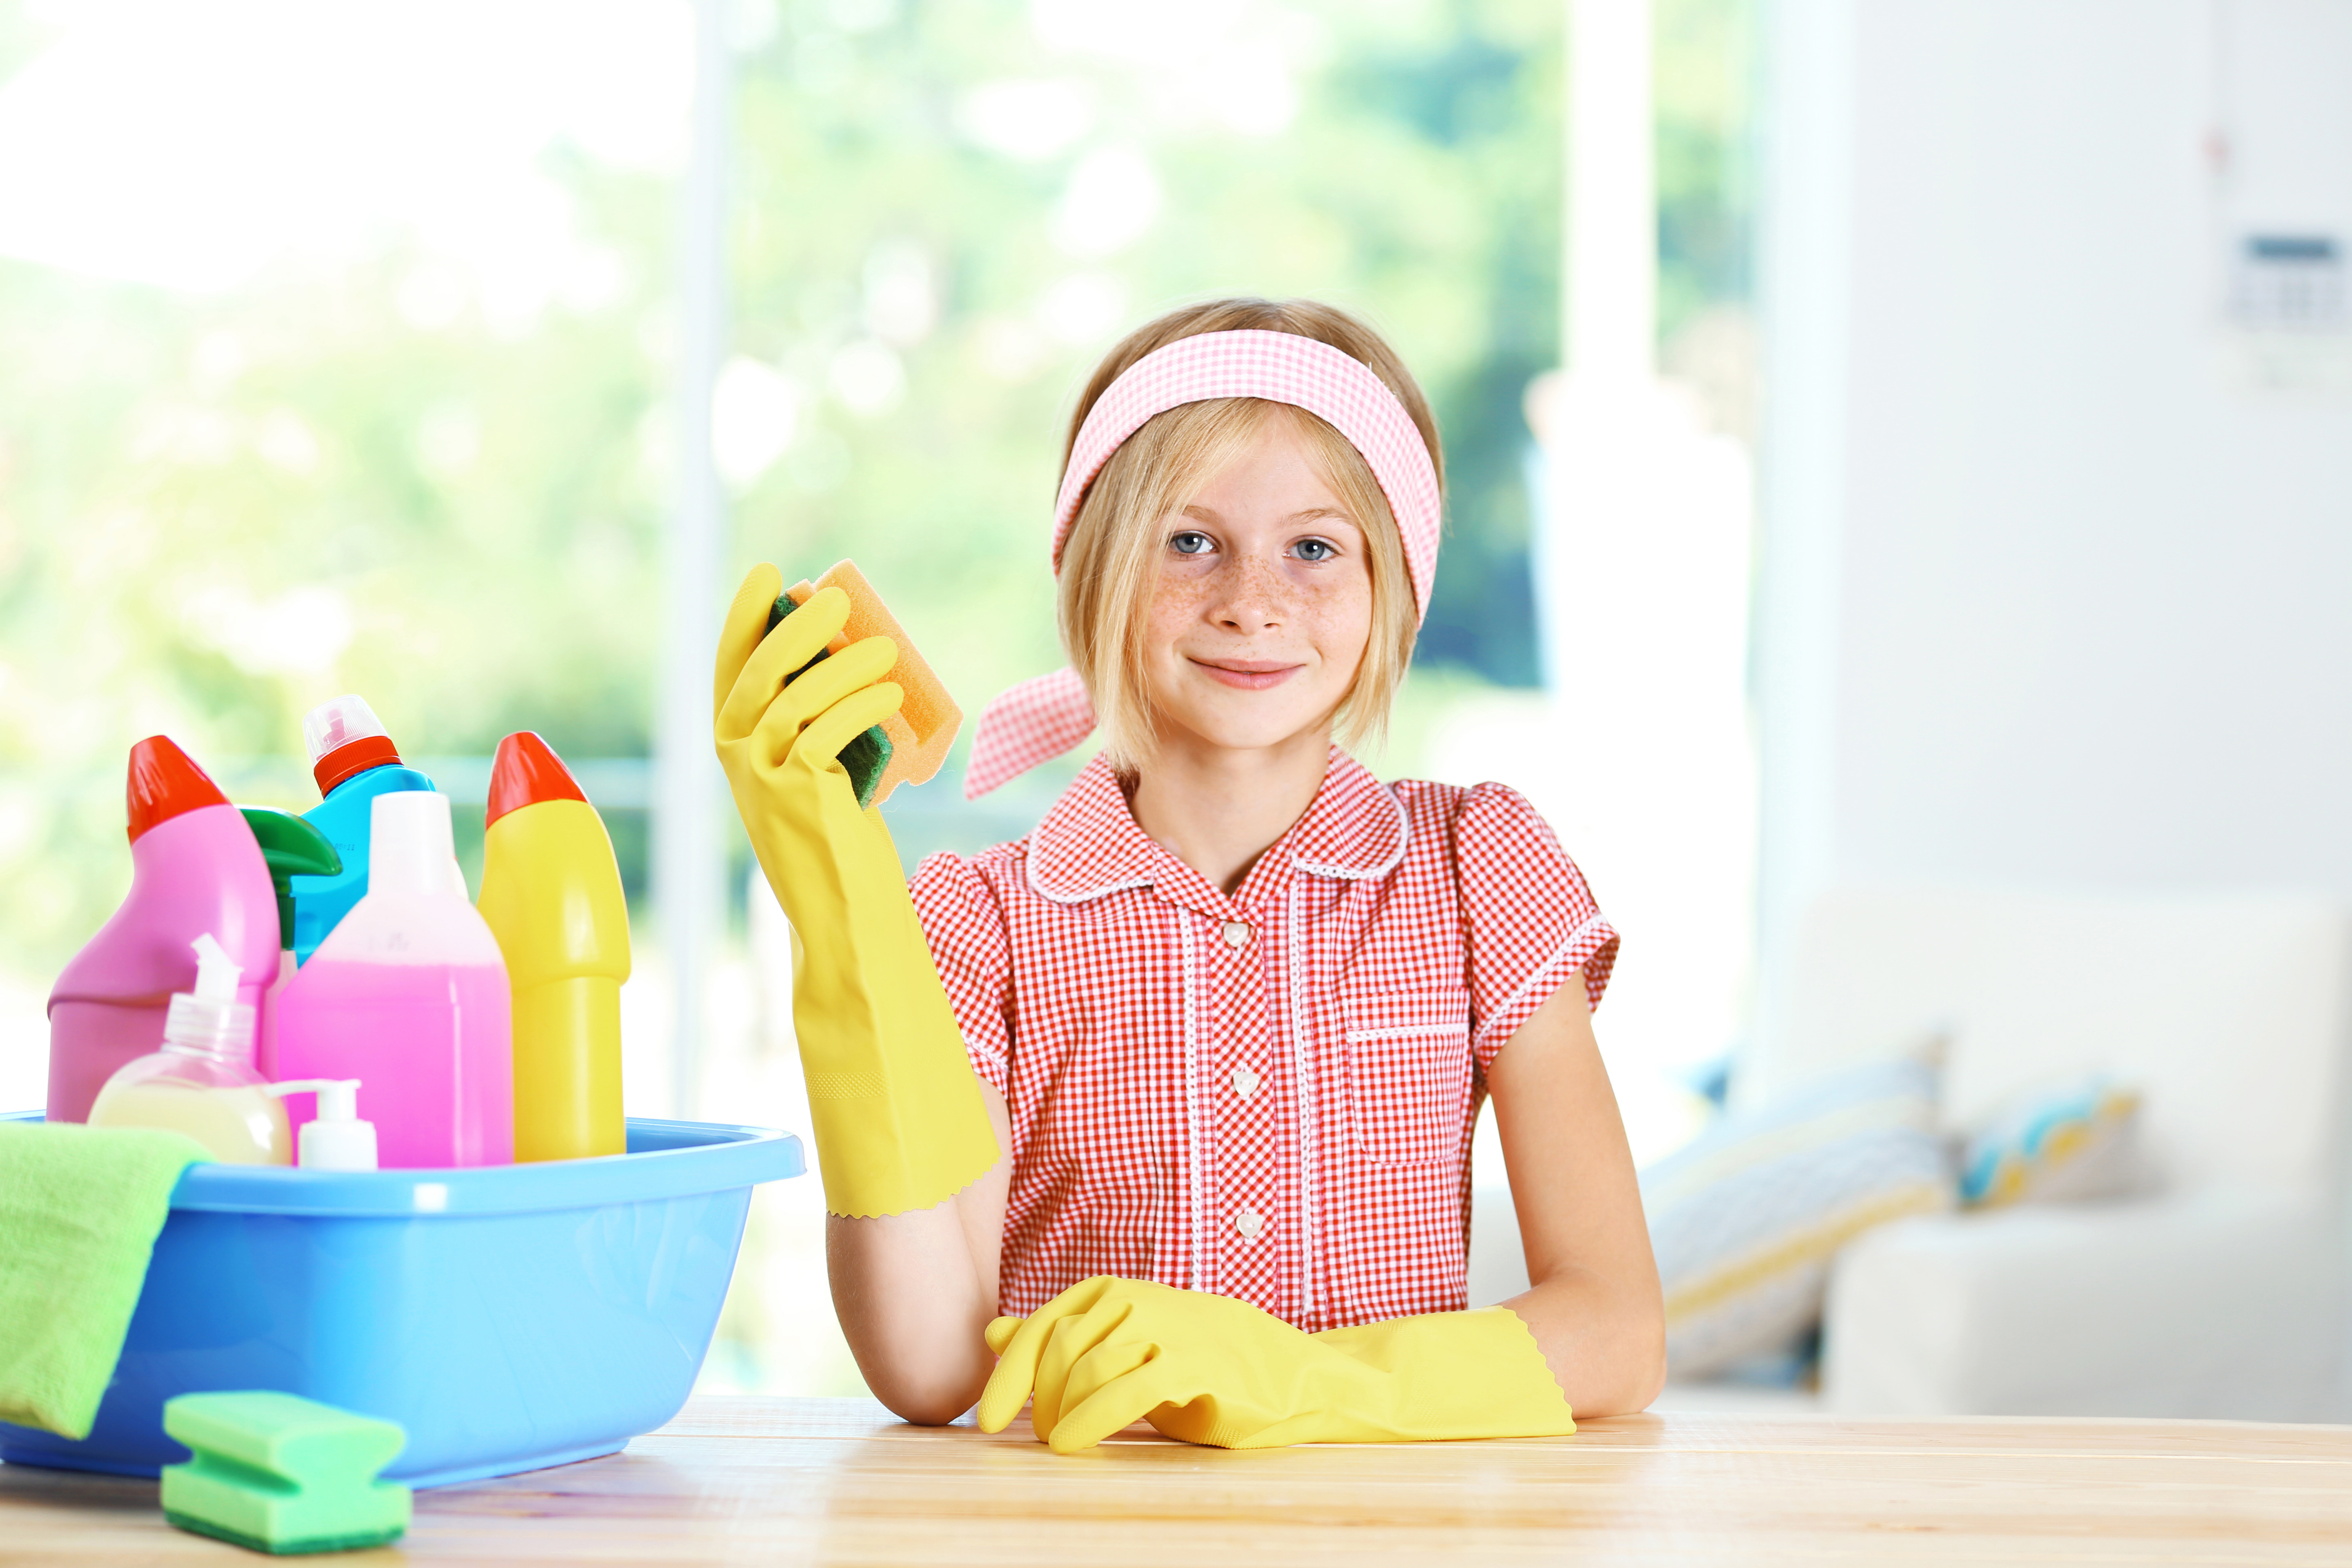 children cleaning their room - HD5760×3840